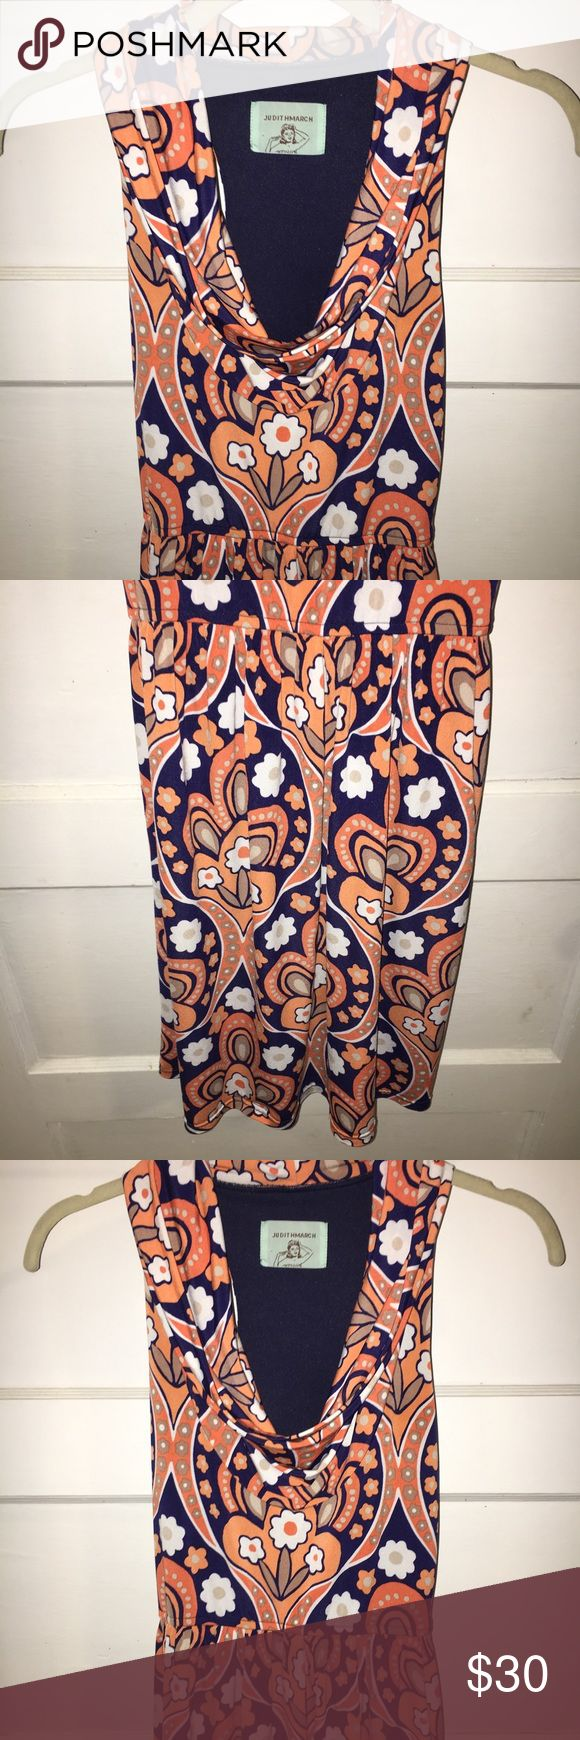 JUDITH MARCH SMALL DRESS W/ COWL NECKLINE JUDITH MARCH SMALL DRESS W/ COWL NECKLINE. NAVY BLUE SLIP LINER UNDERNEATH. WOMEN'S SMALL. EUC** NO WEAR. NAVY, ORANGE, & WHITE. MAKE AN OFFER. Judith March Dresses Midi